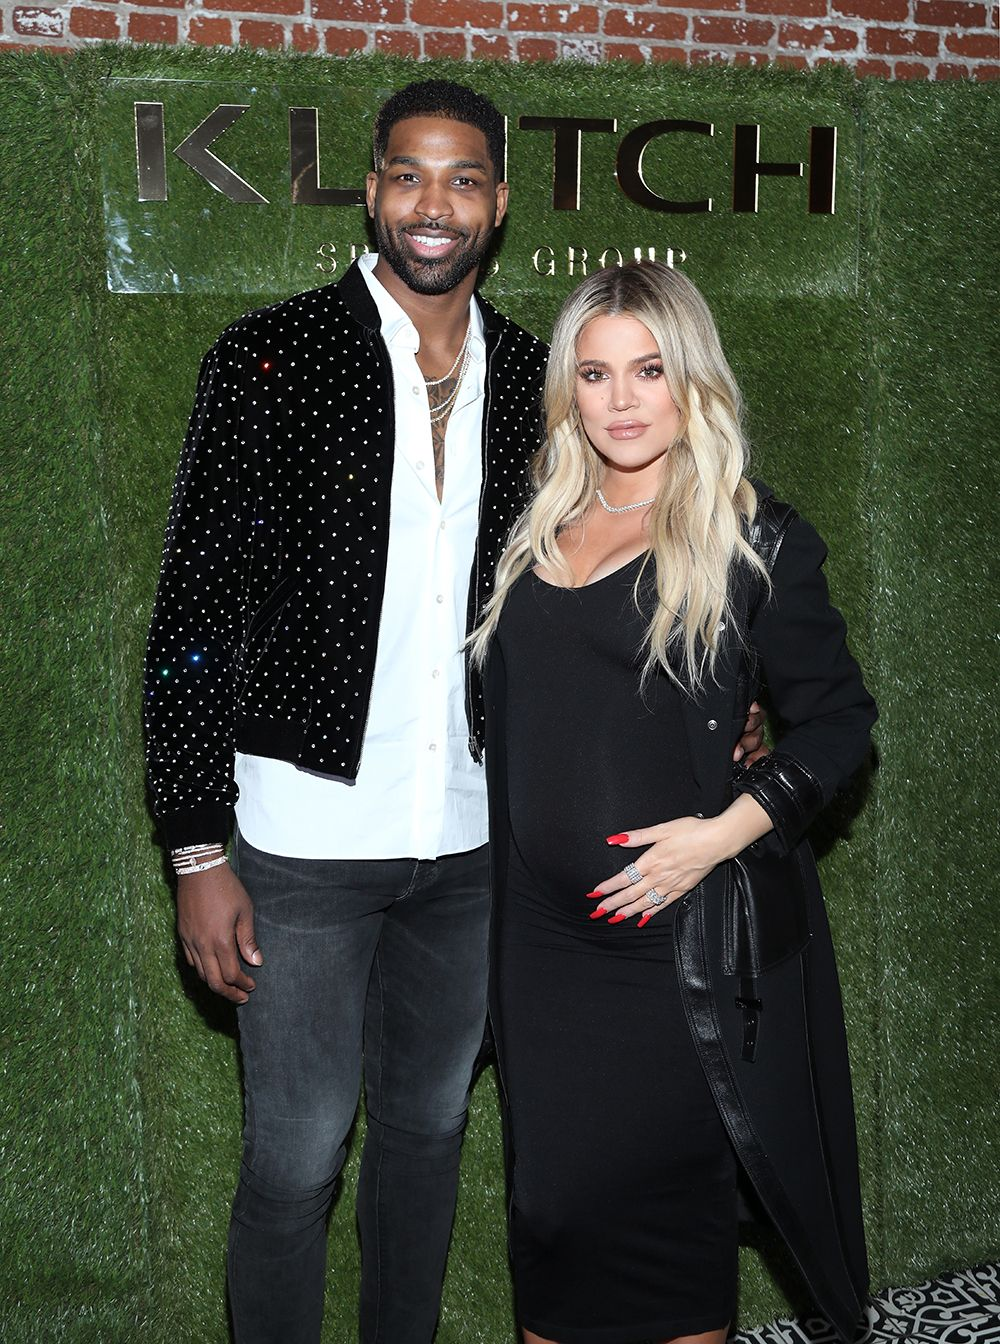 How long were khloe and lamar hookup before getting engaged